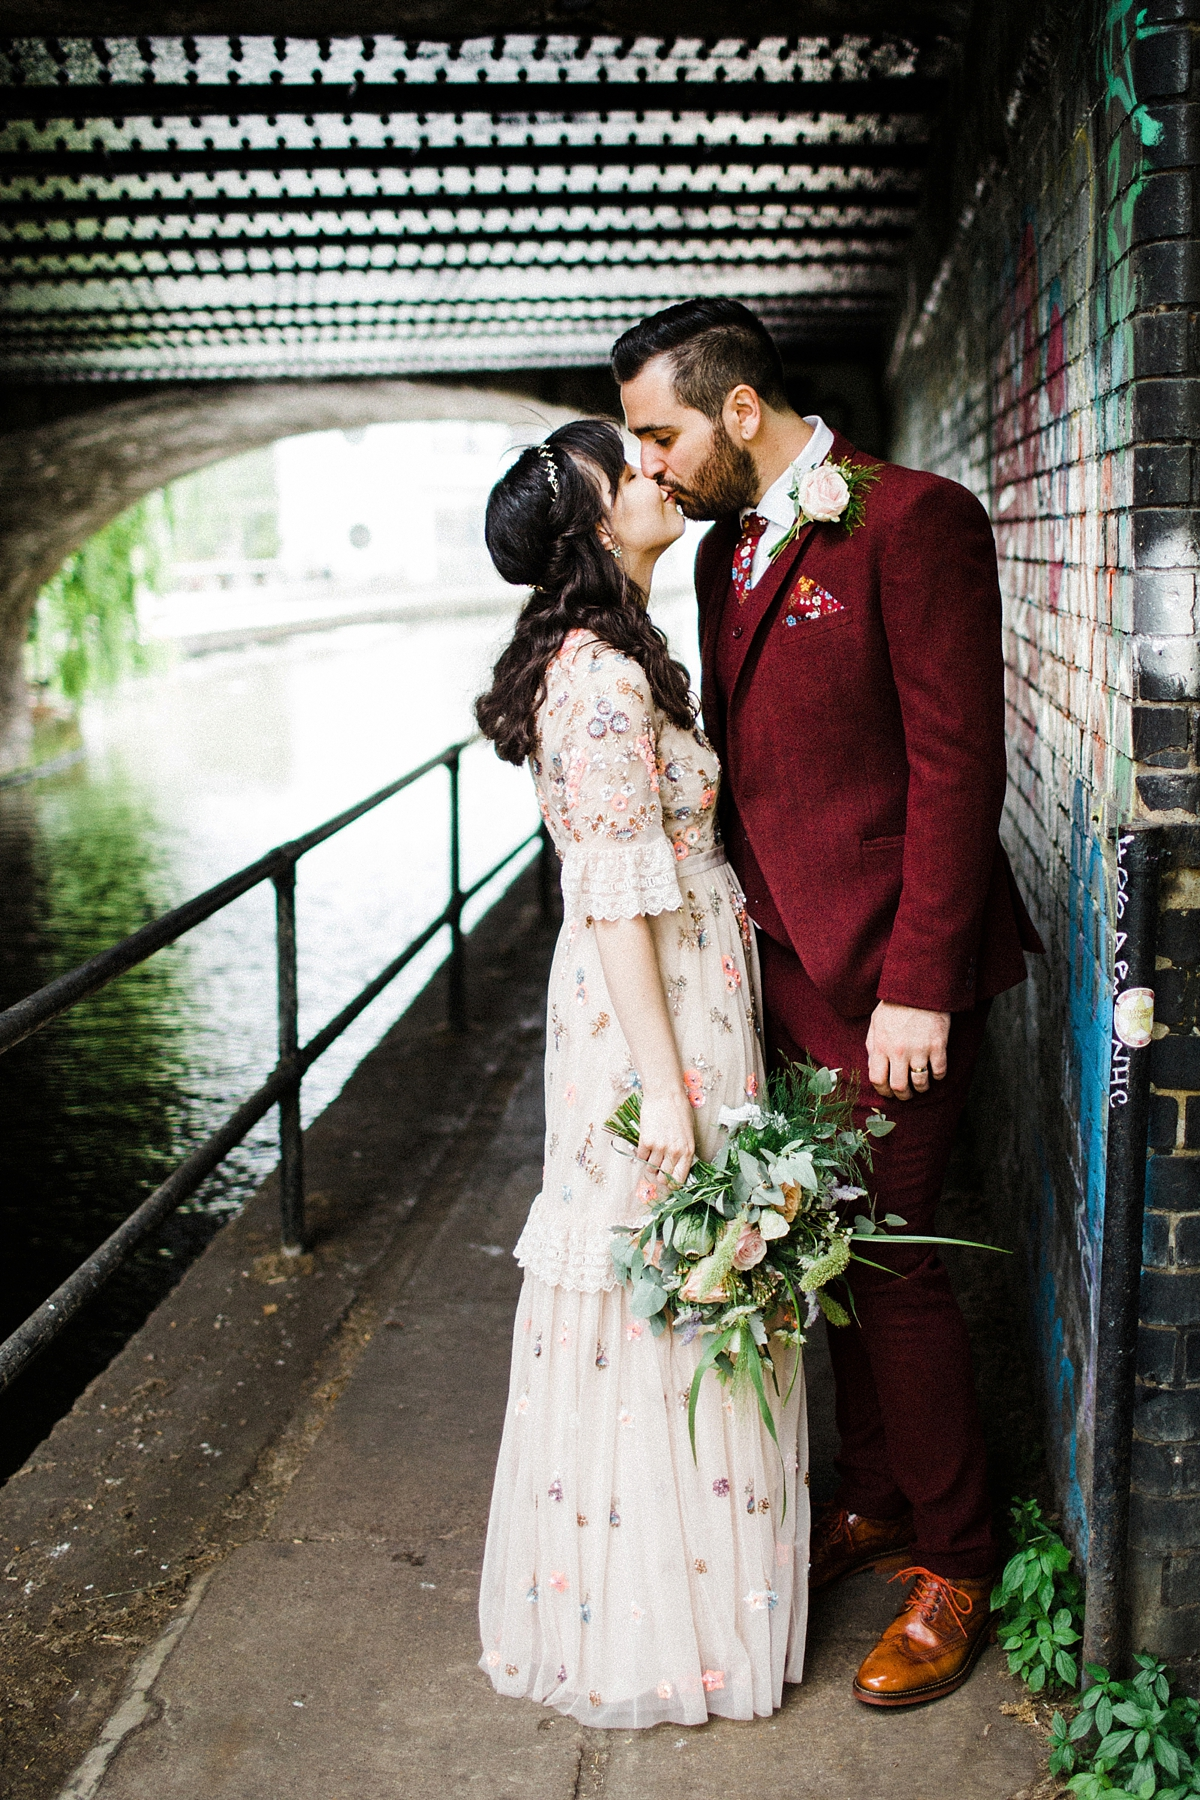 """3c94026f4d7c4 Photography by Claudia Rose Carter · Needle Thread bride Modern London pub  wedding - A Floral Needle & Thread Dress for a. """""""